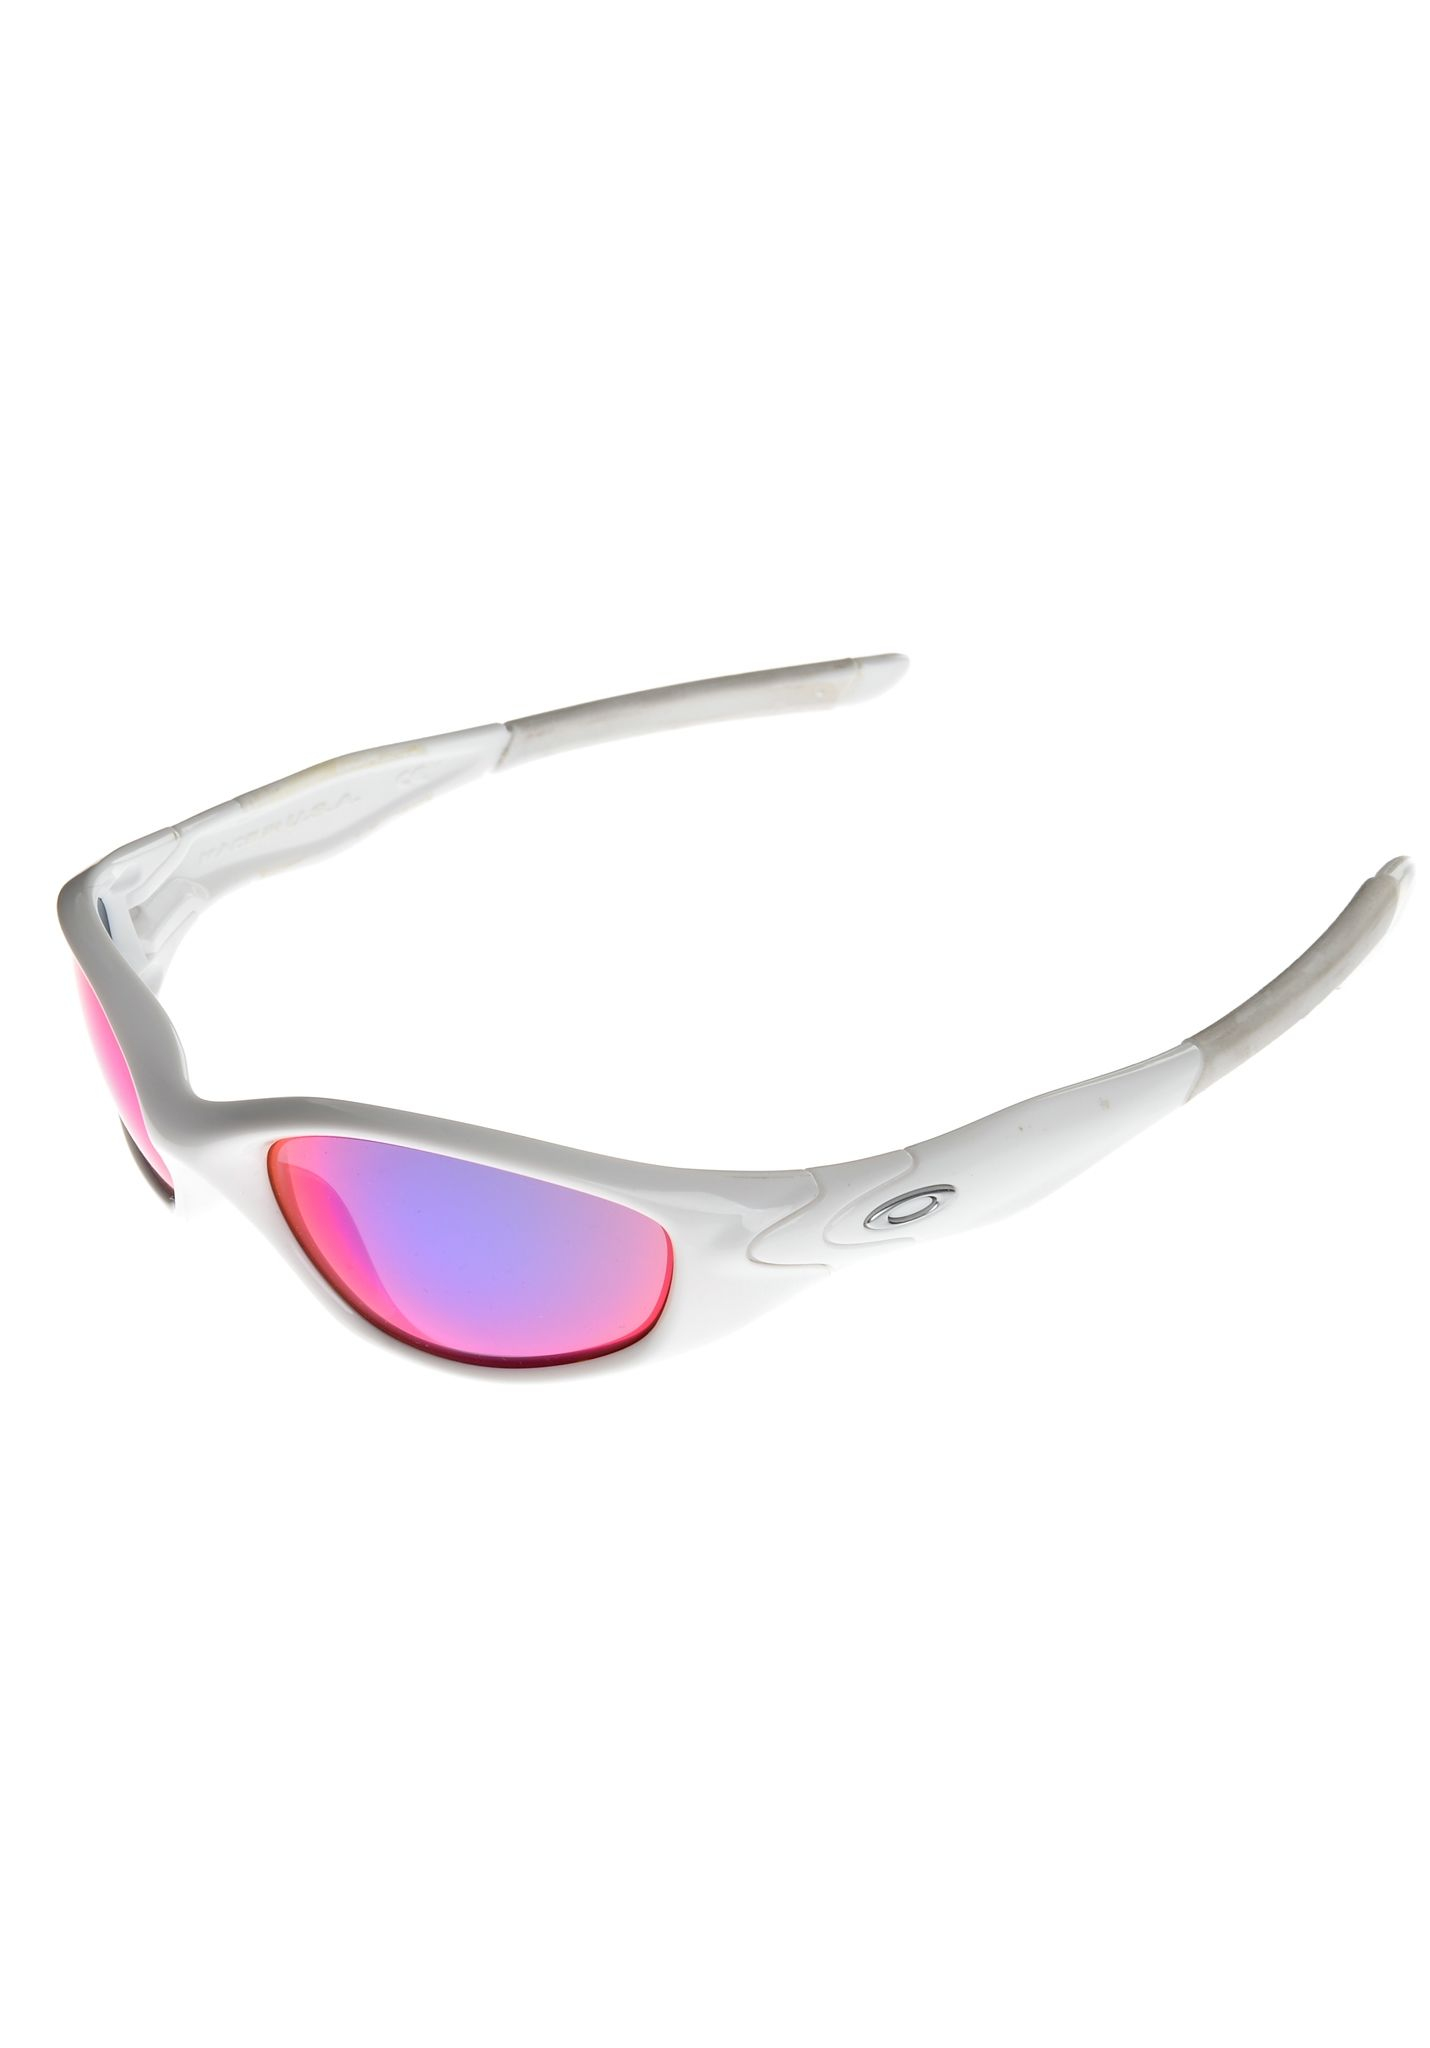 oakley mens minute sunglasses  oakley minute sunglasses for men